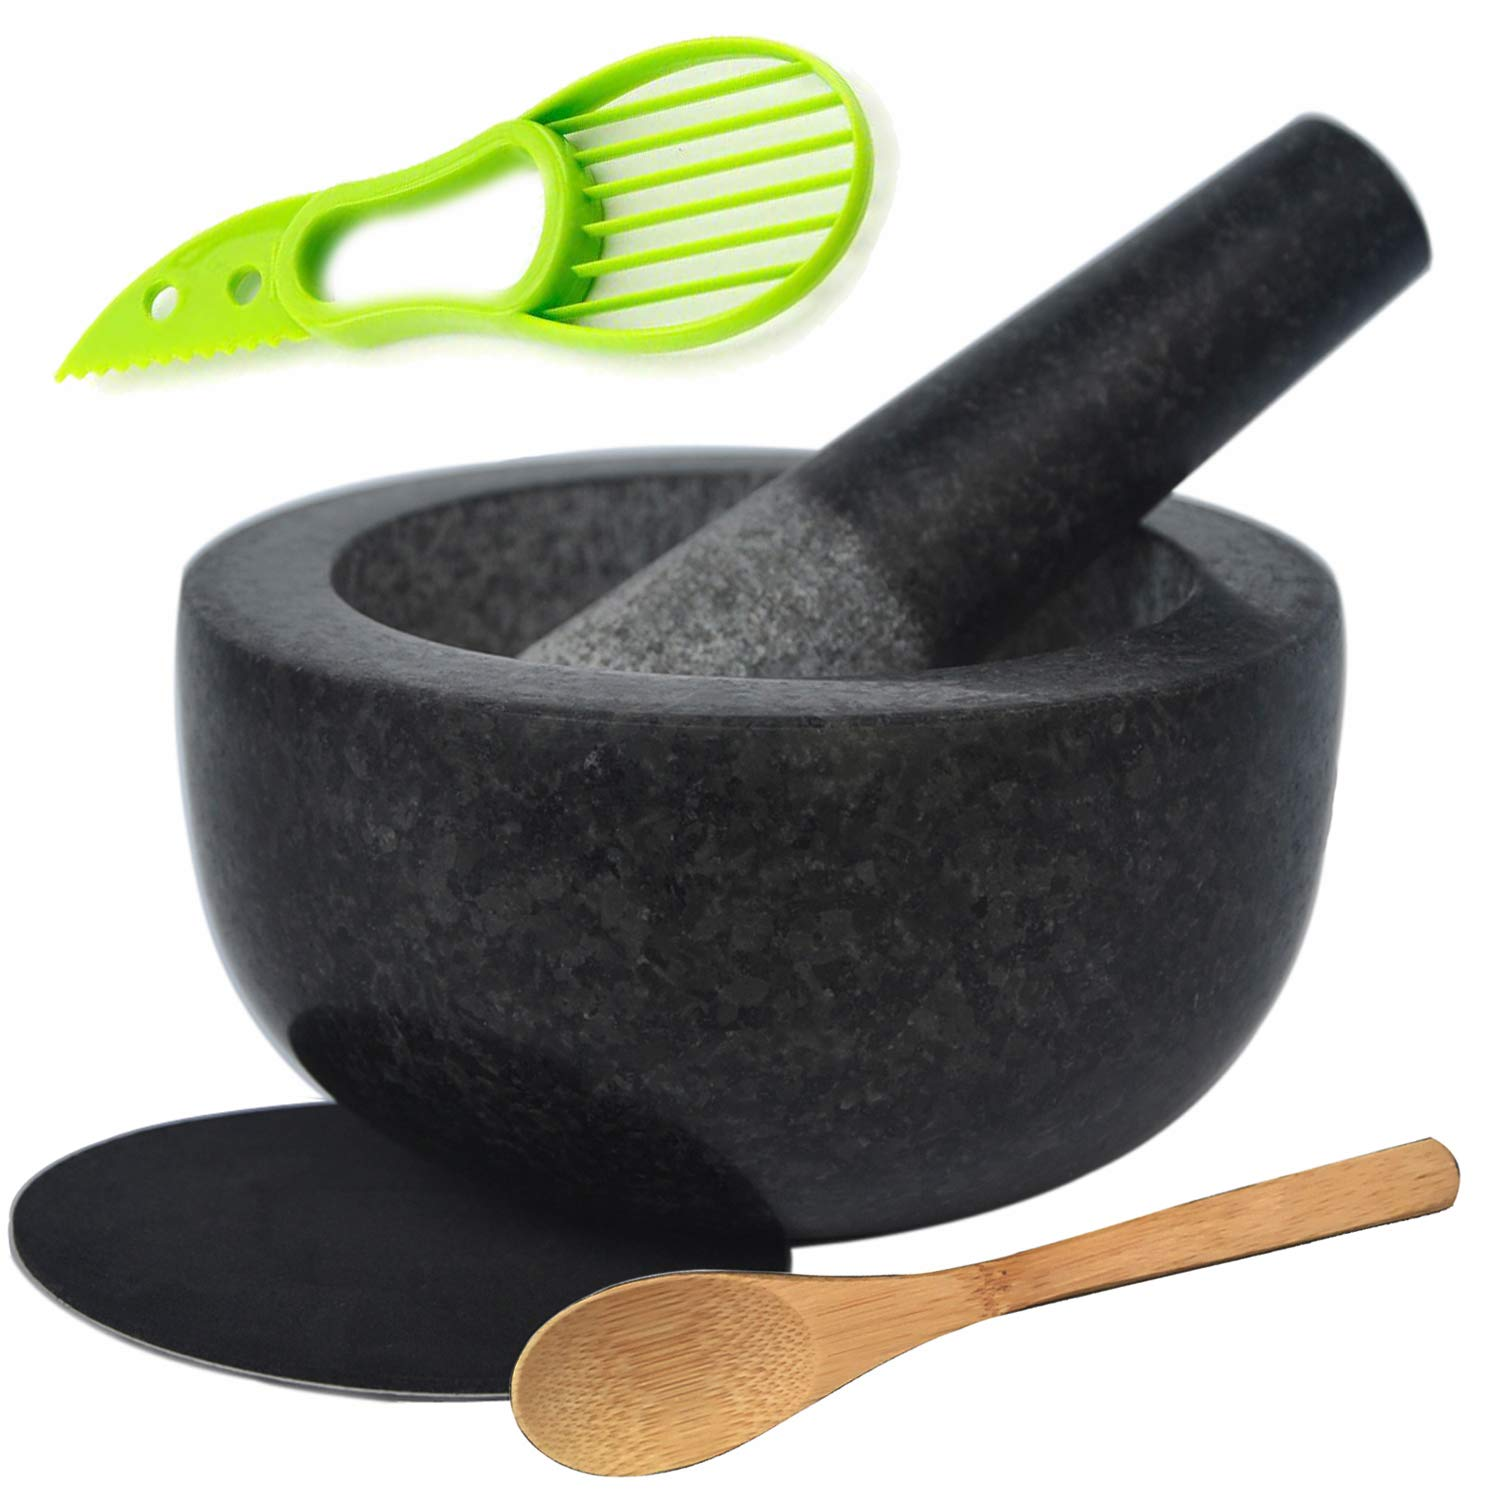 Large Granite Mortar and Pestle Set 6.3 inch, Cozymat Molcajete, Salsa Pestos Guacamole Bowl, Herbs and Spices Grinder, with EVA Anti-scratch Pad& Spoon, Black by cozymat